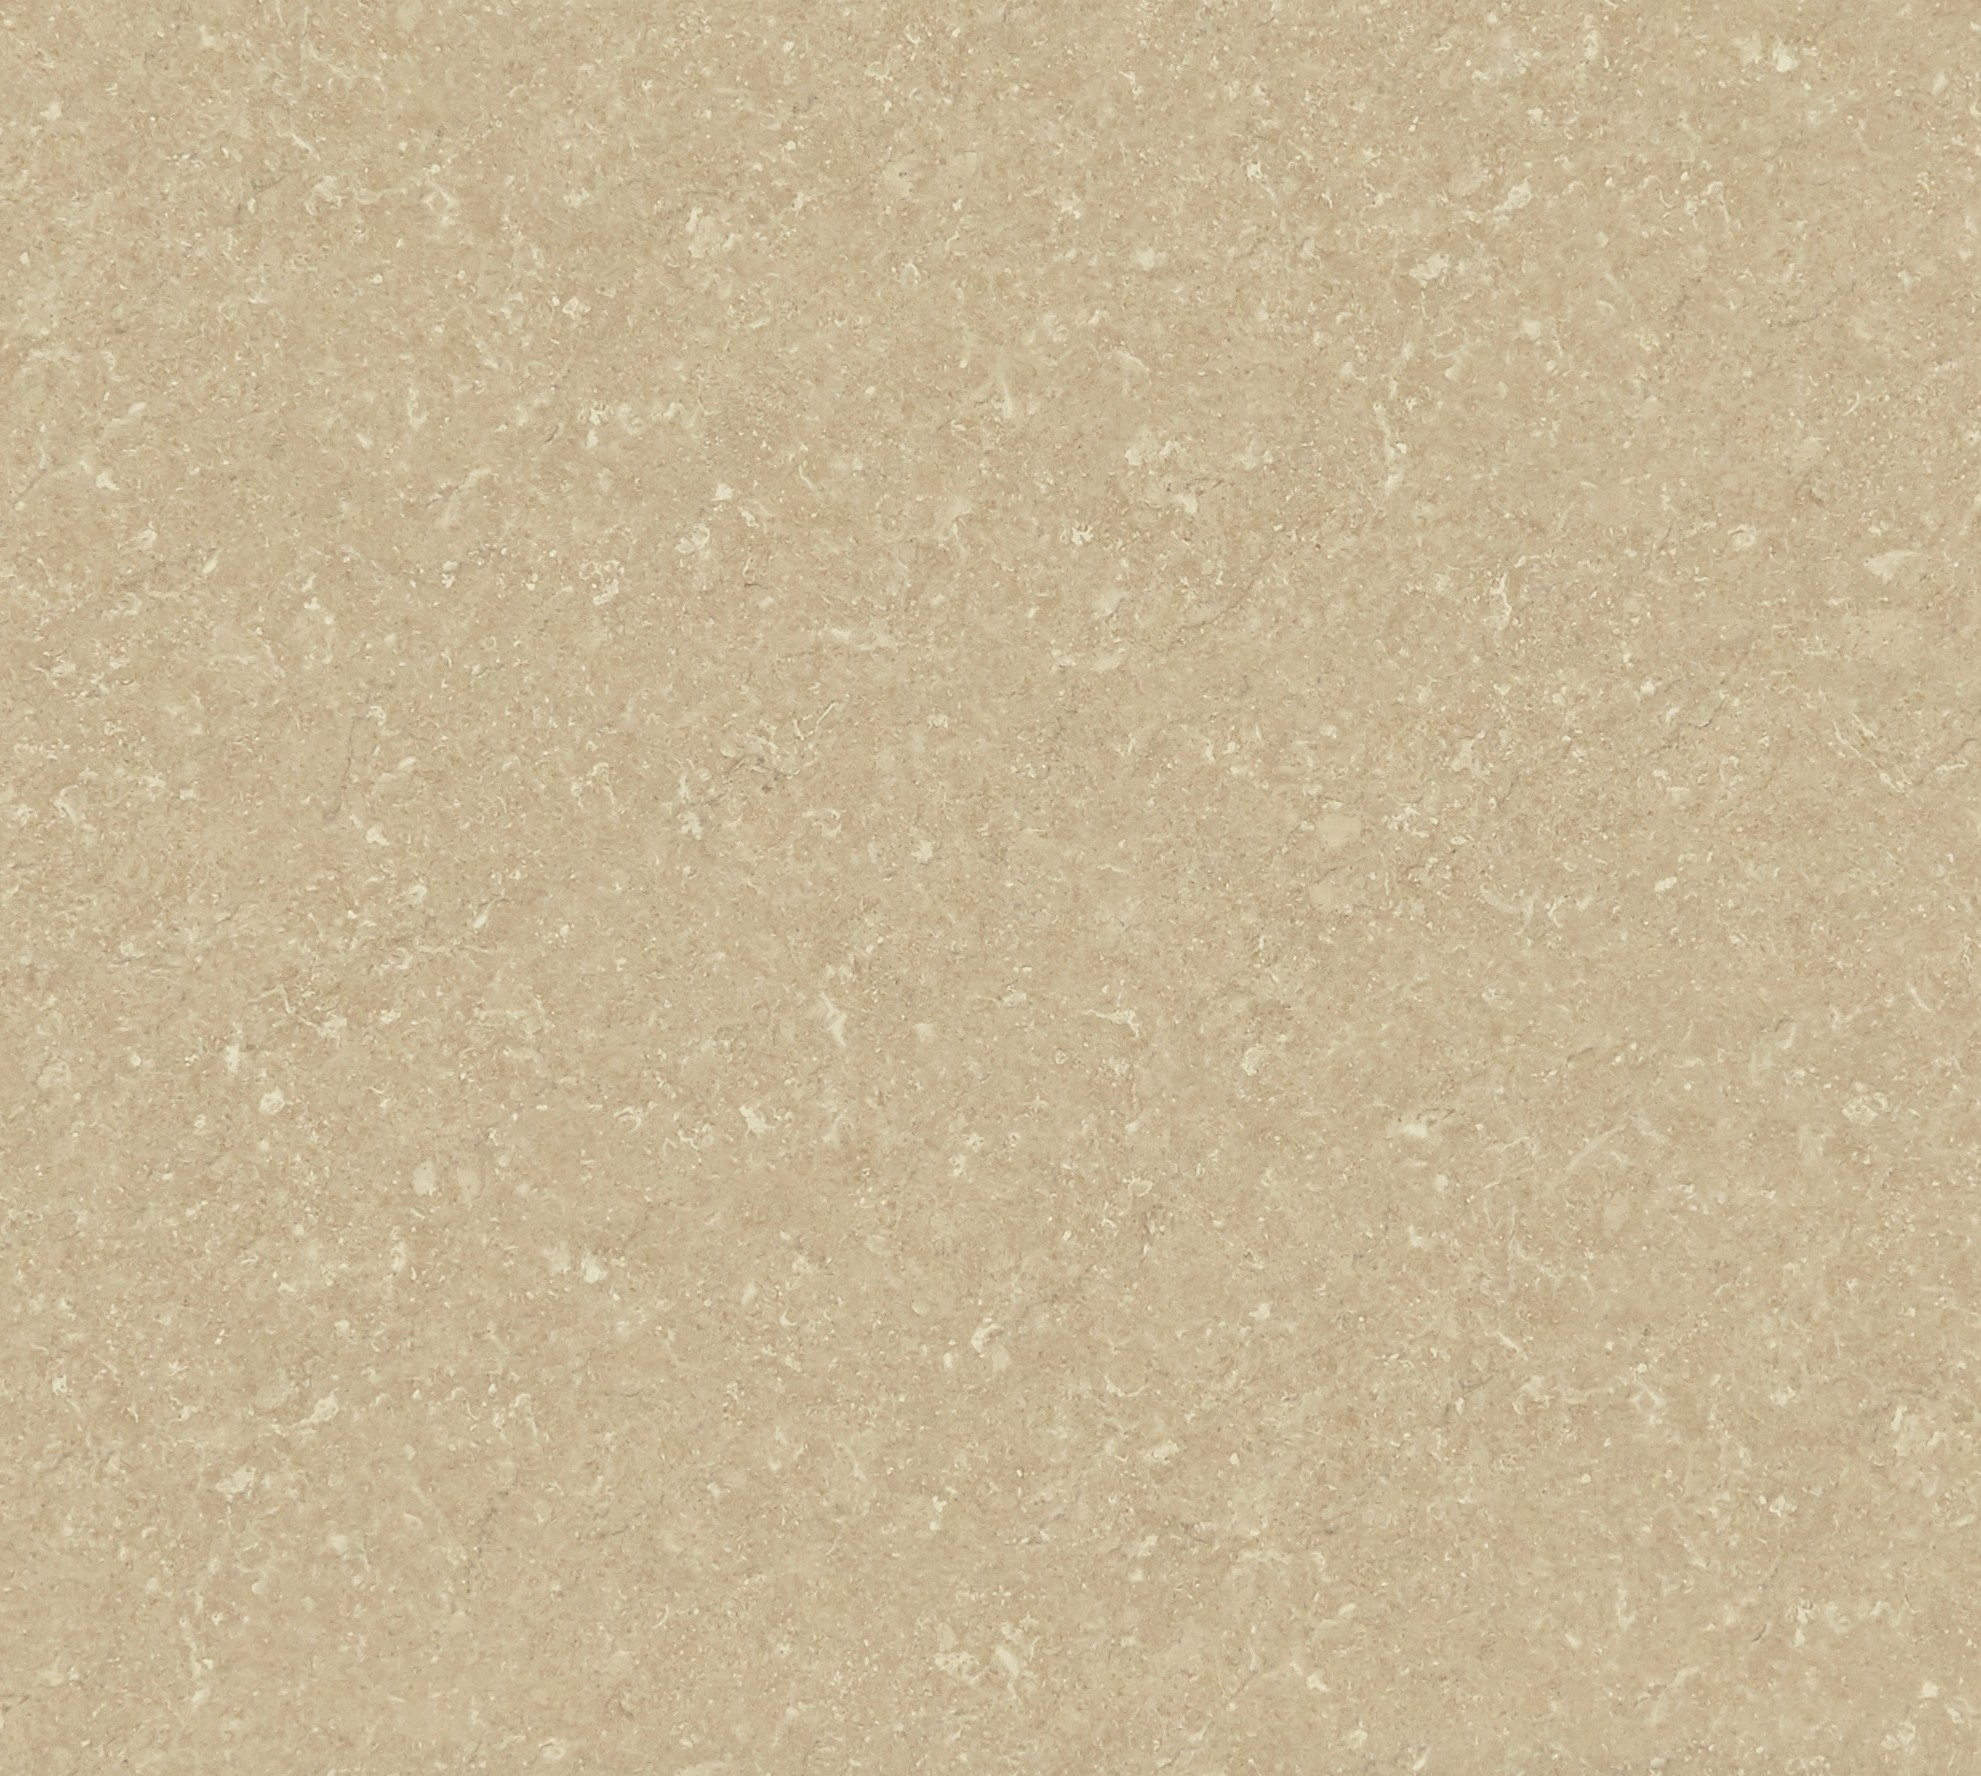 An image of Nuance Tongue and Groove Panel 600mm x 2420mm x11mm Classic Travertine